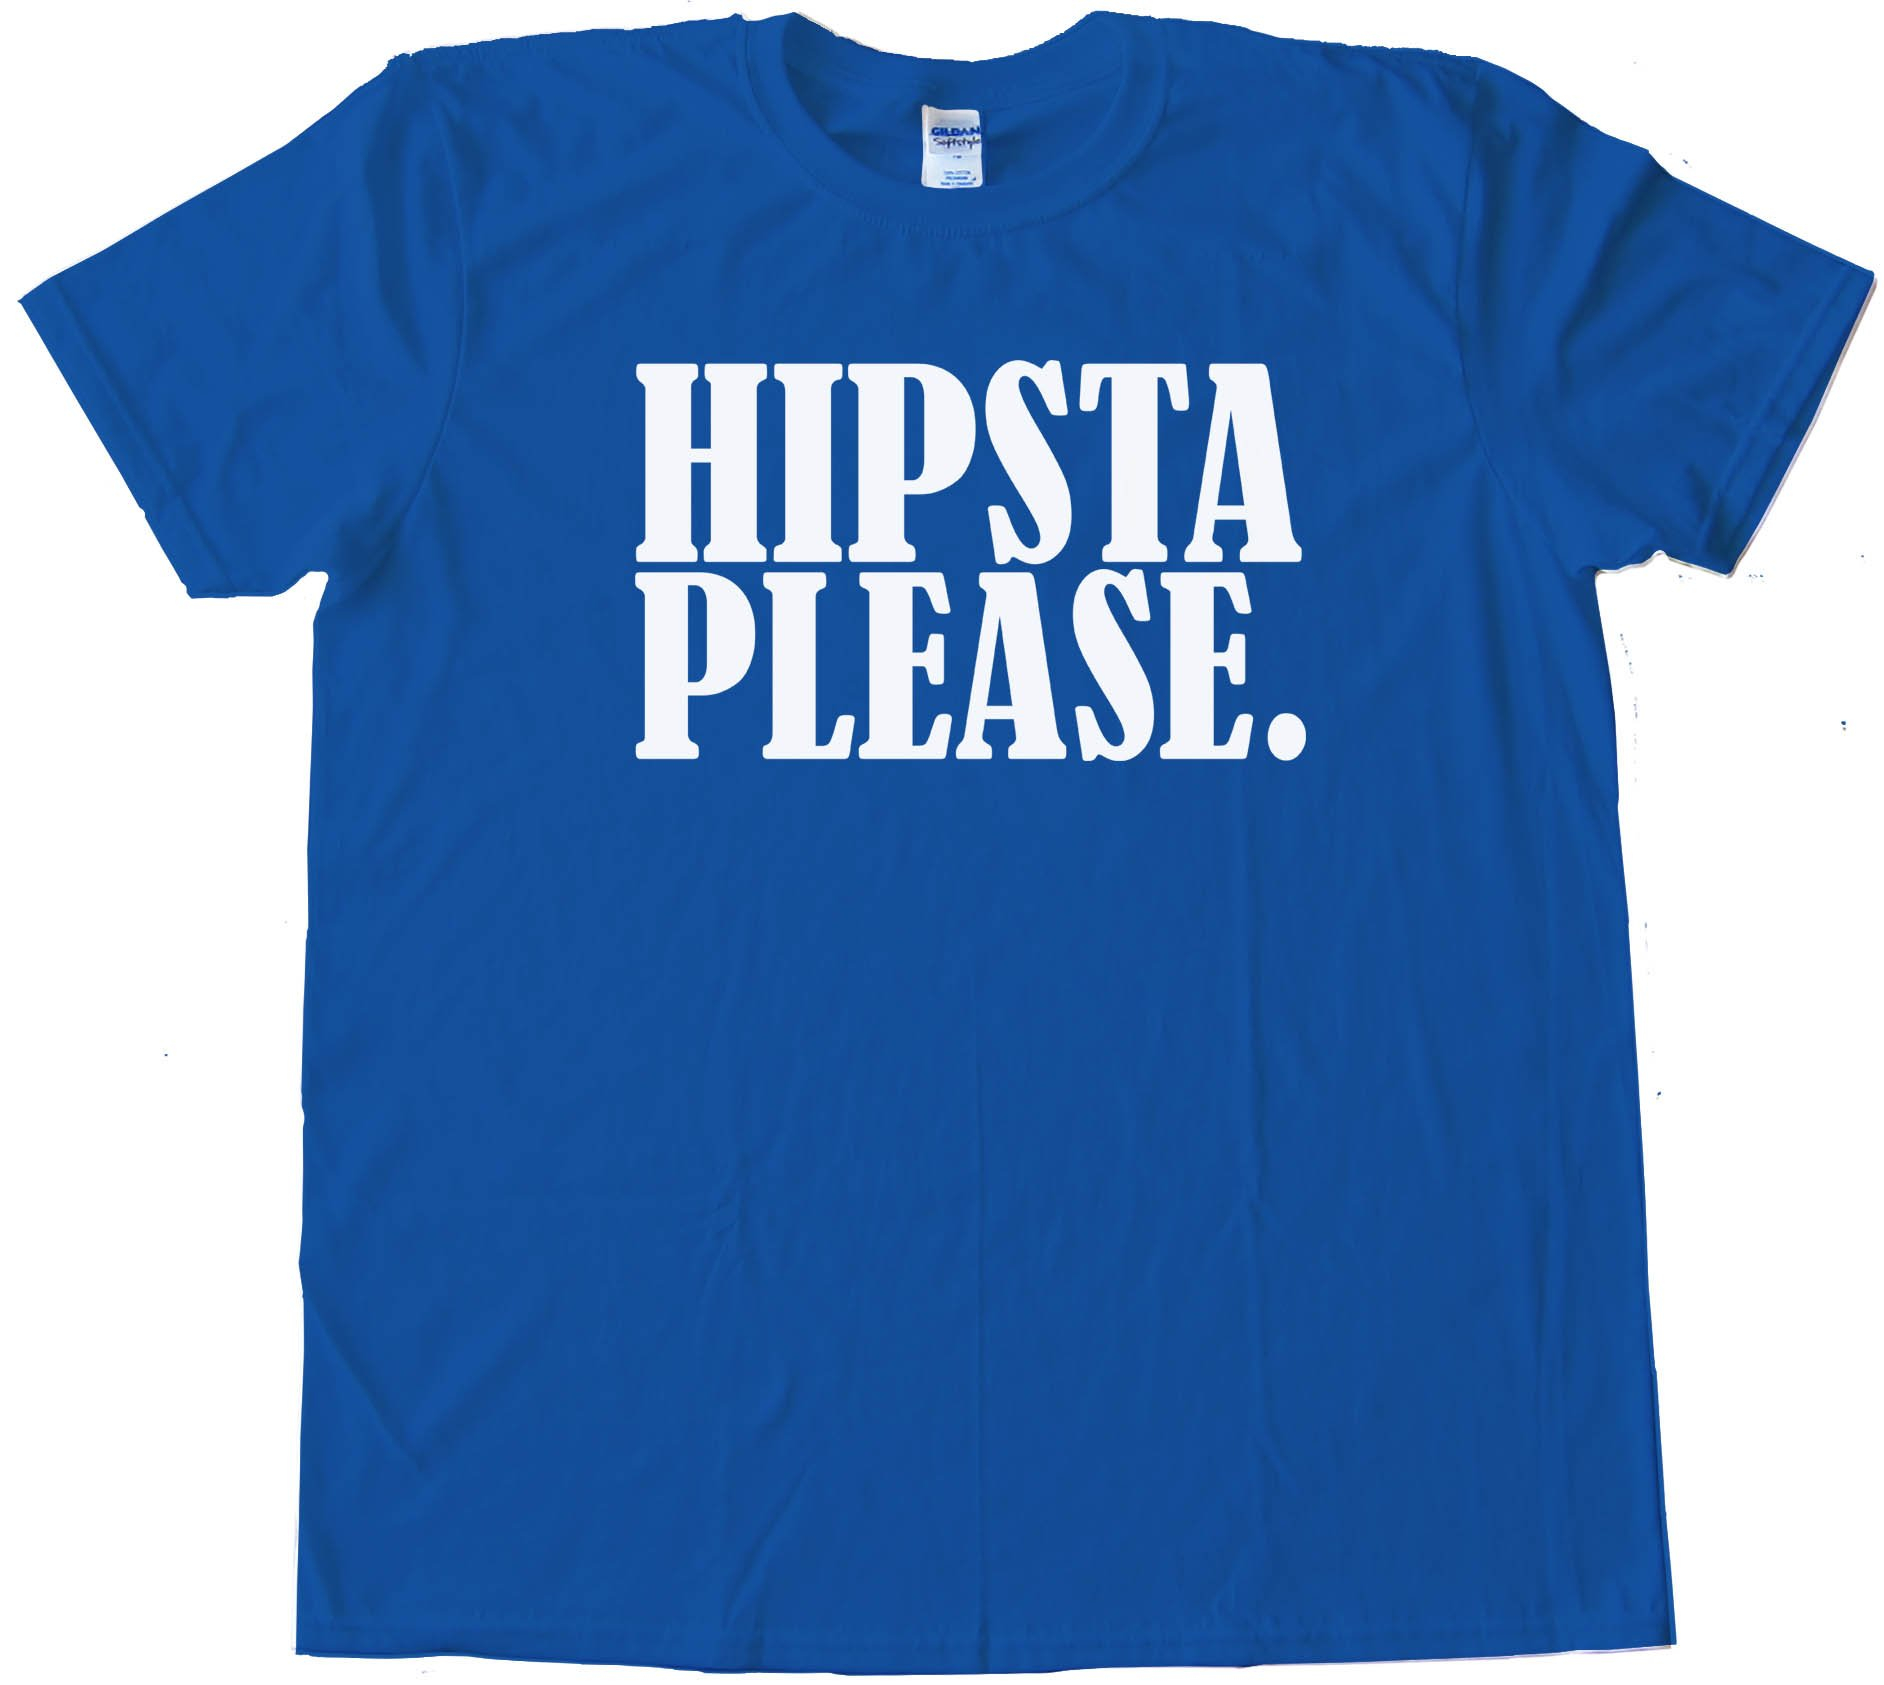 Hipsta Please. - Tee Shirt